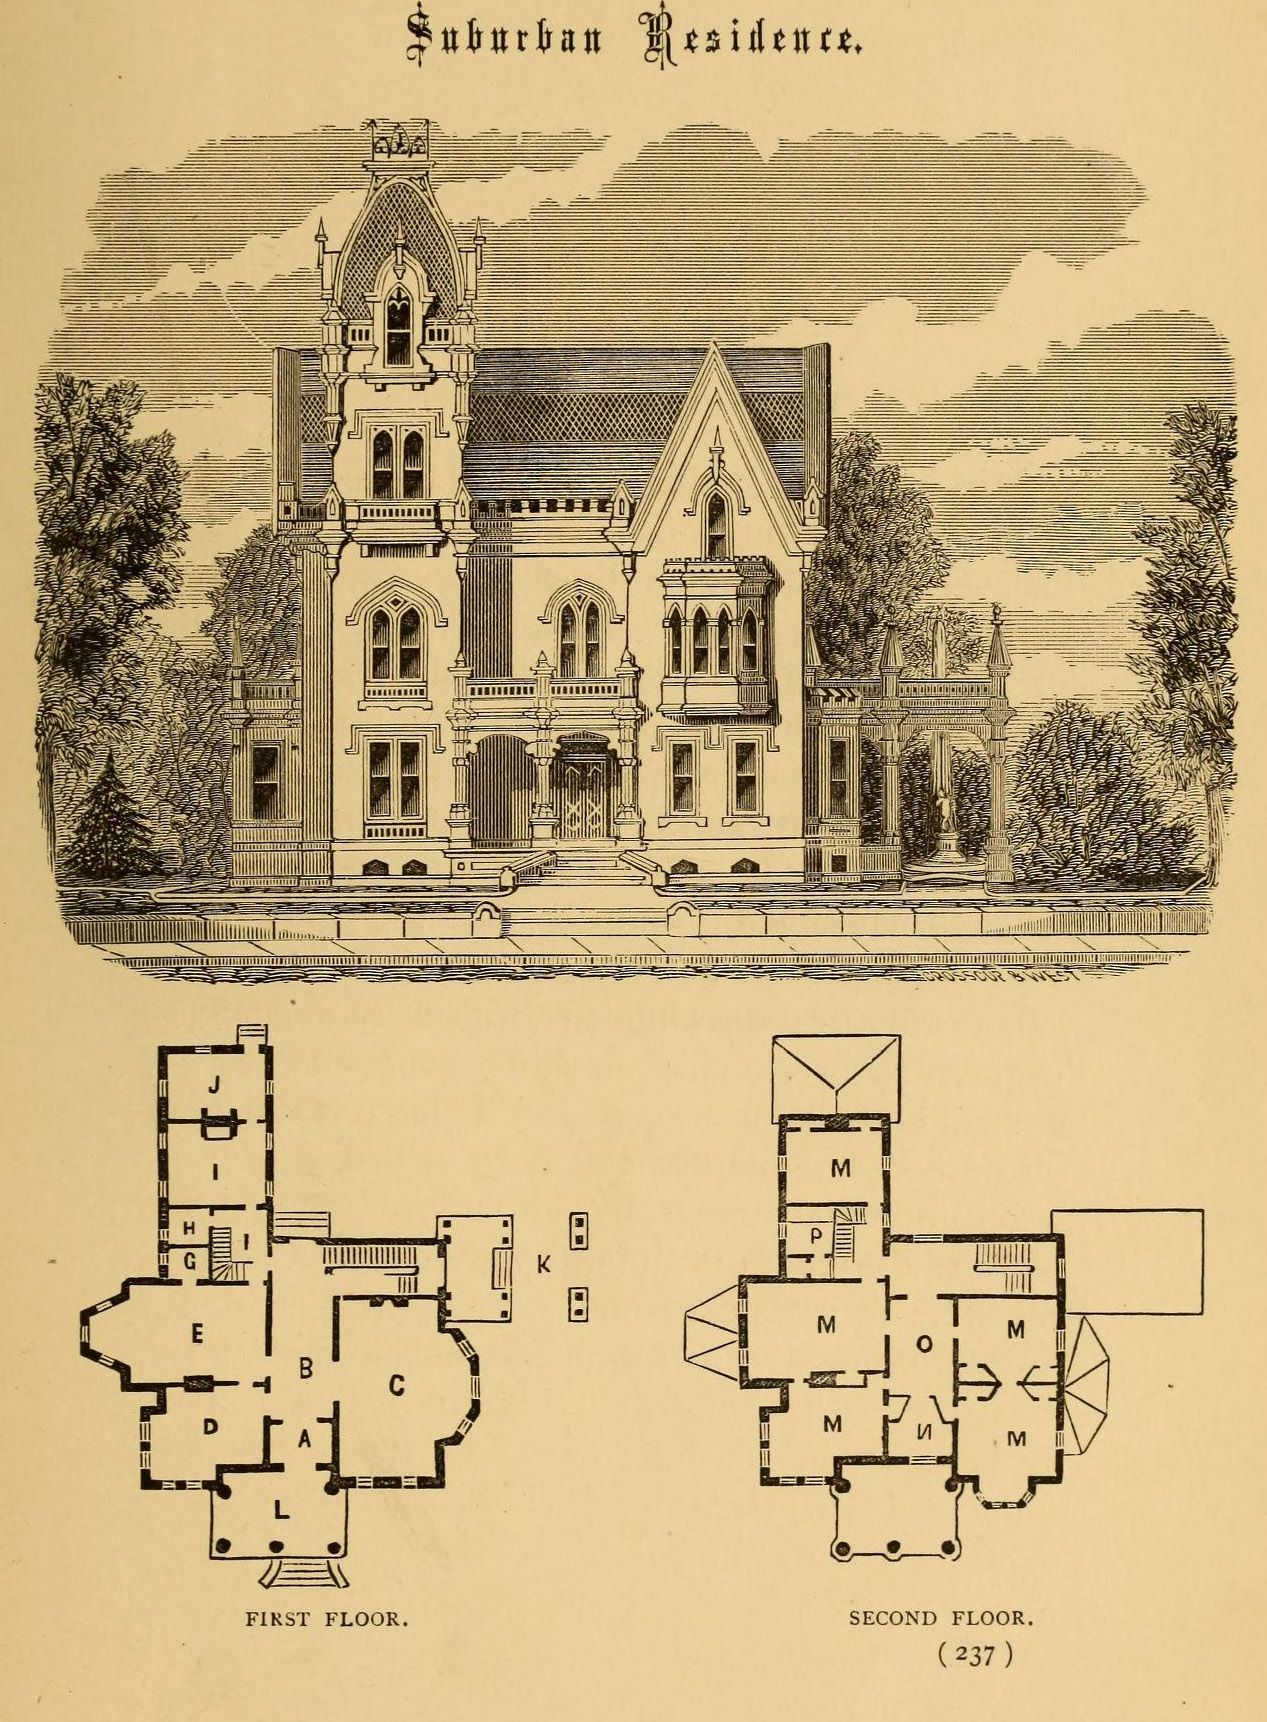 house plans victorian design for a suburban residence revival except for 12501